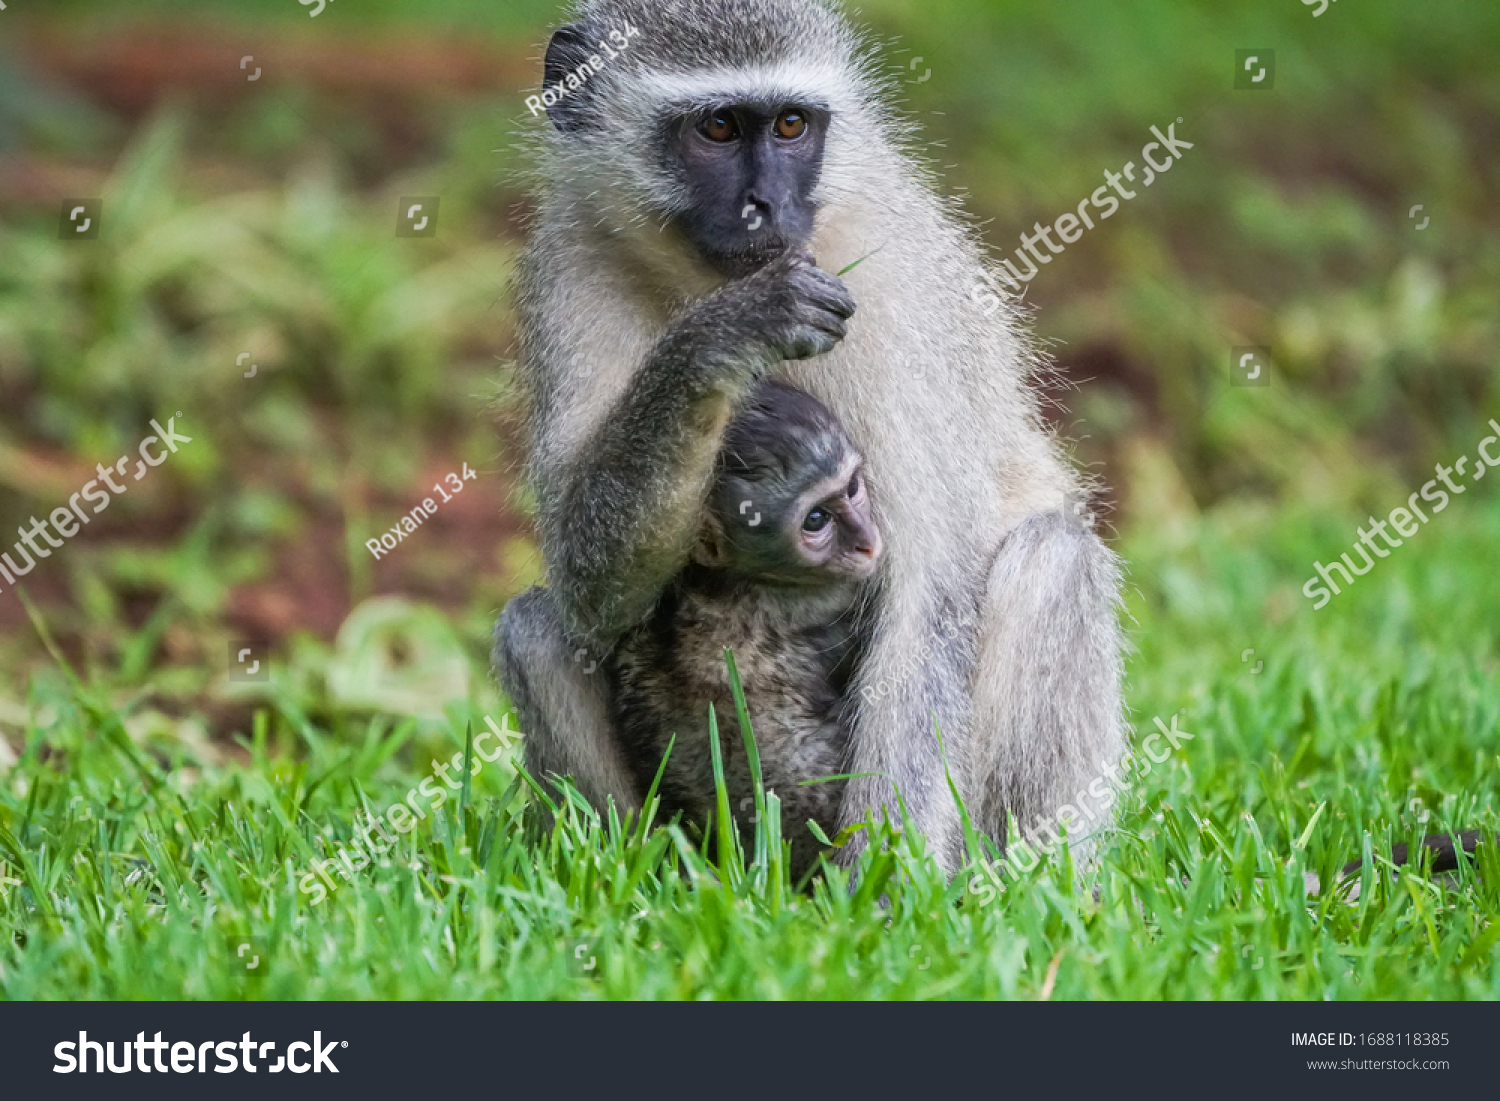 stock-photo-vervet-monkey-chlorocebus-py